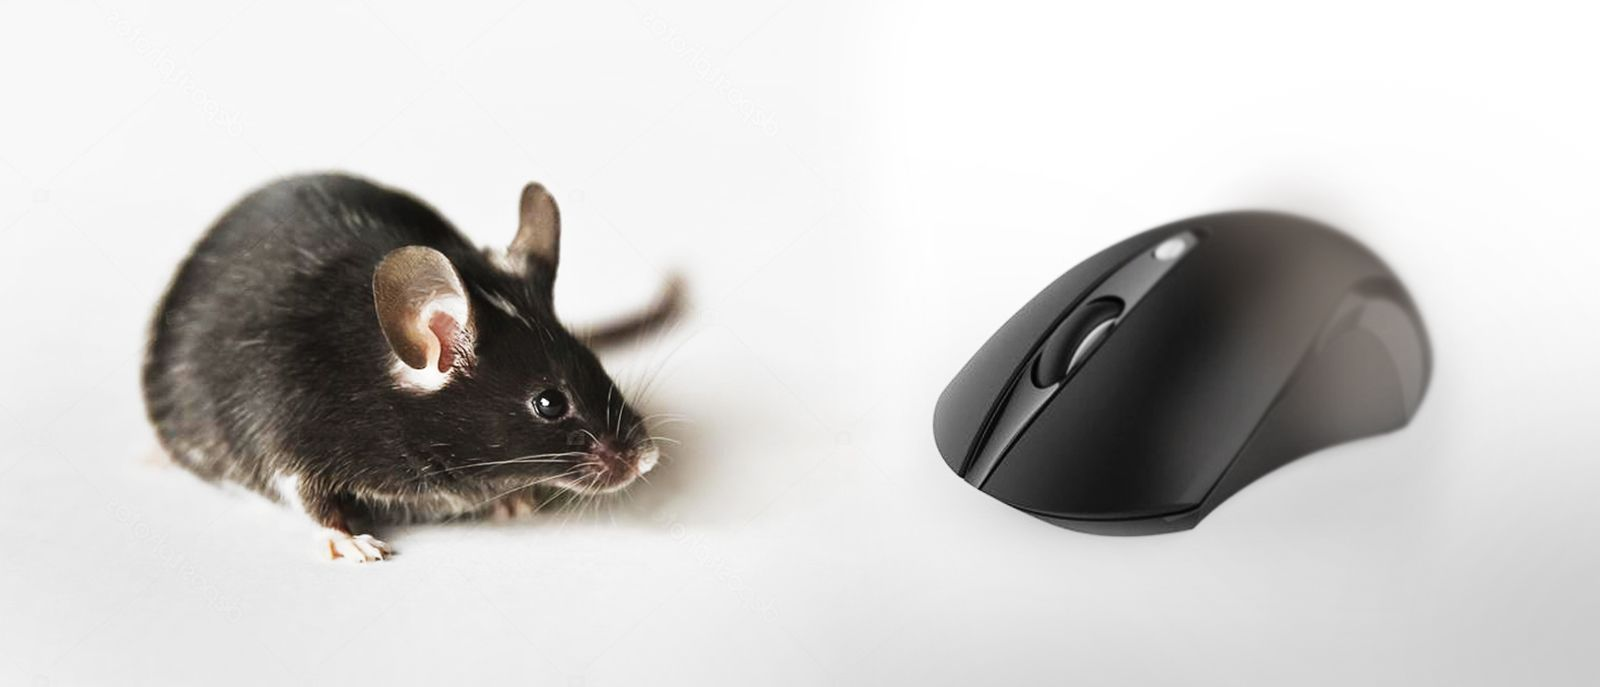 image of a living black mouse and a black computer mouse